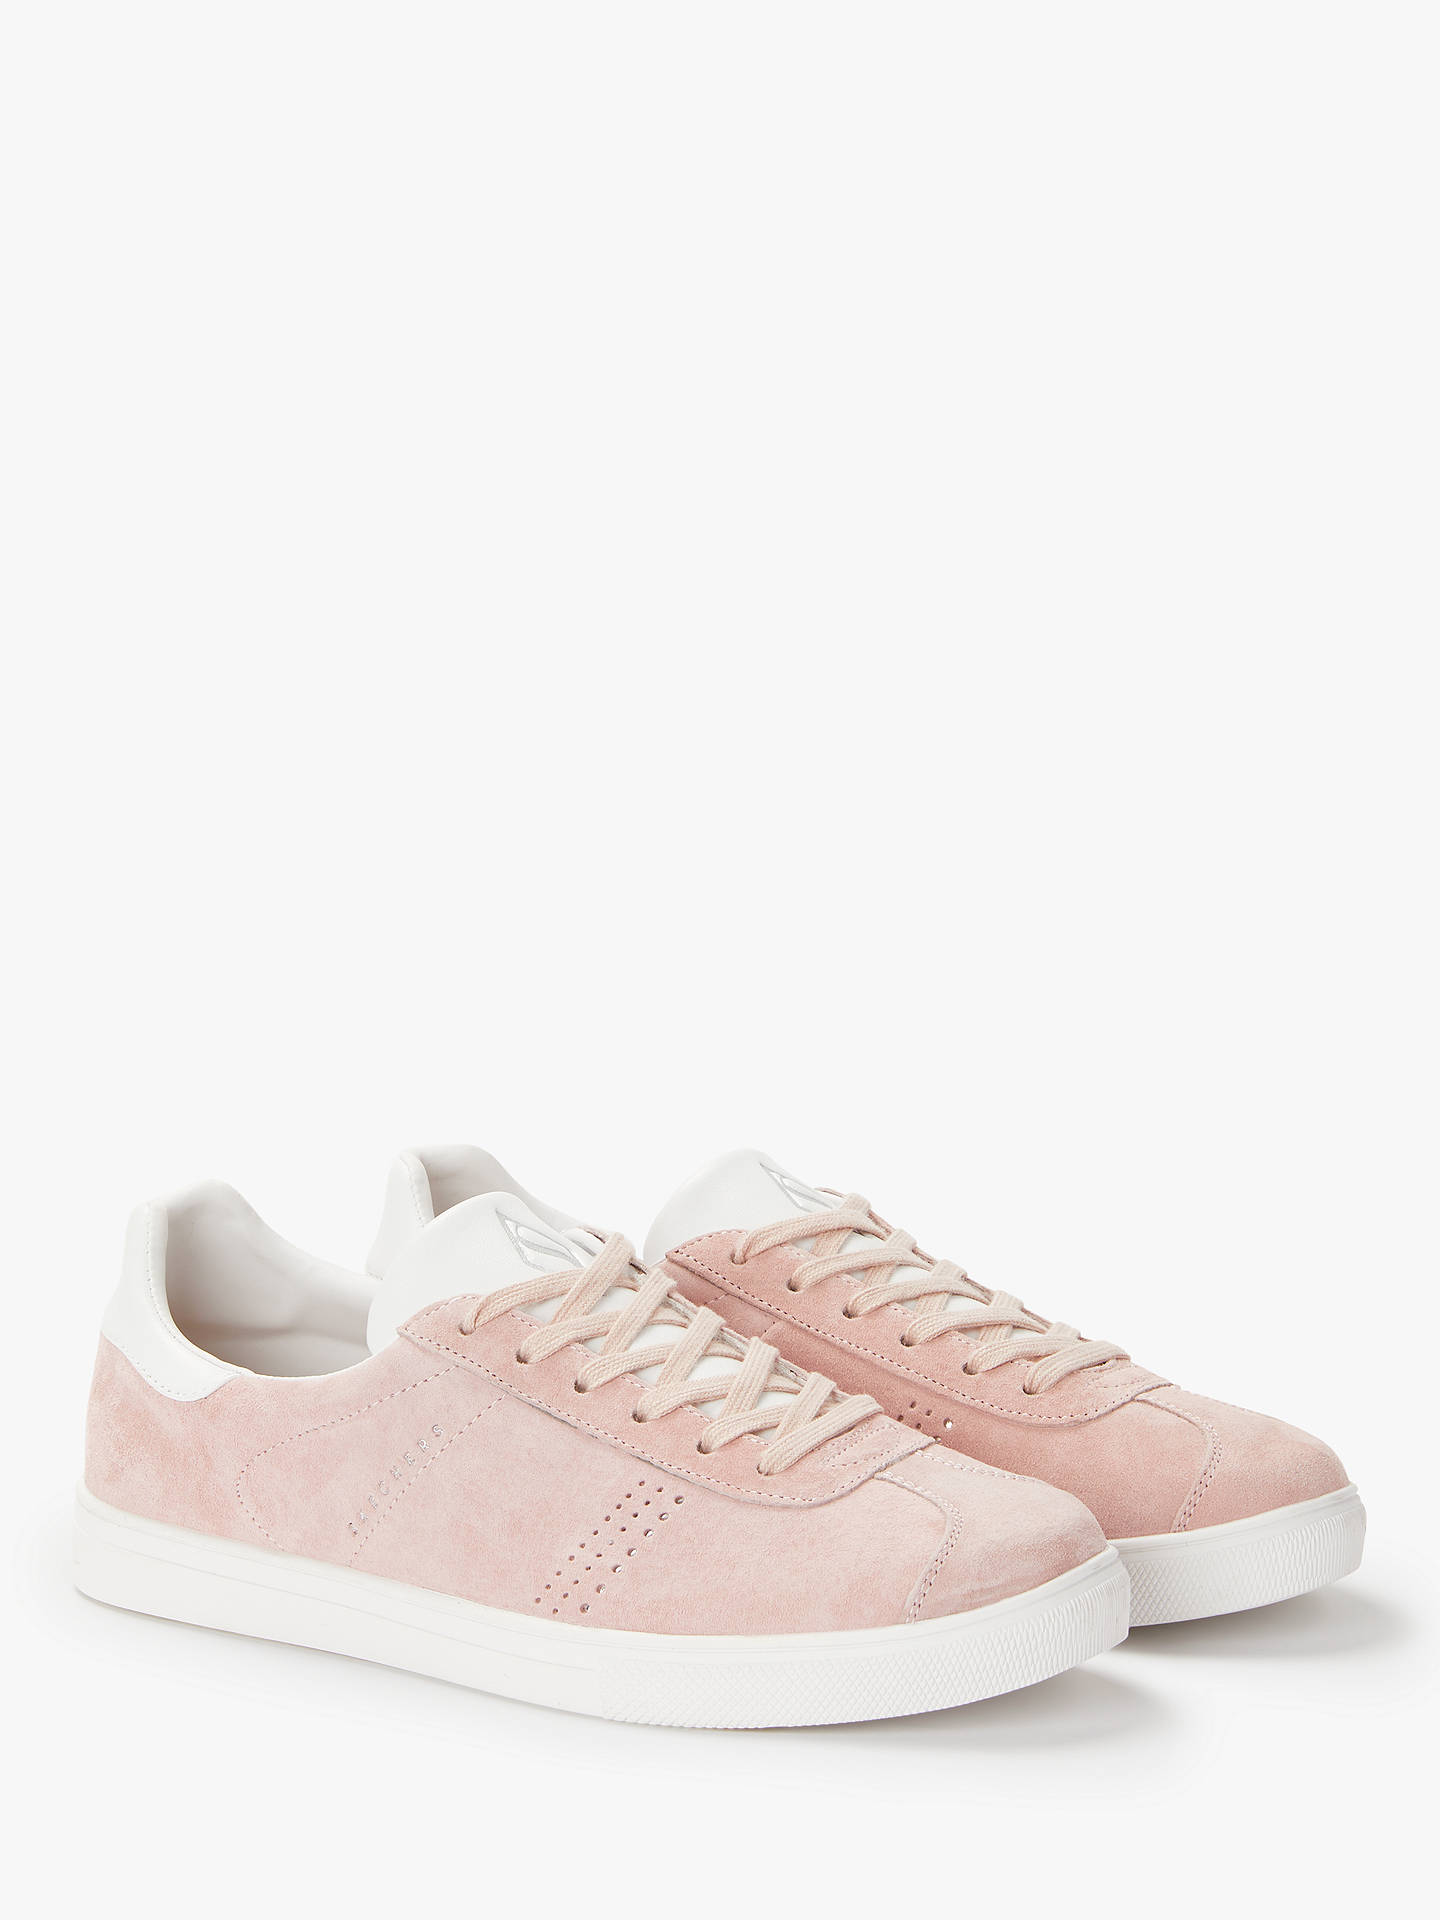 BuySkechers Moda Perswayed Lace Up Trainers, Pink Suede, 3 Online at johnlewis.com